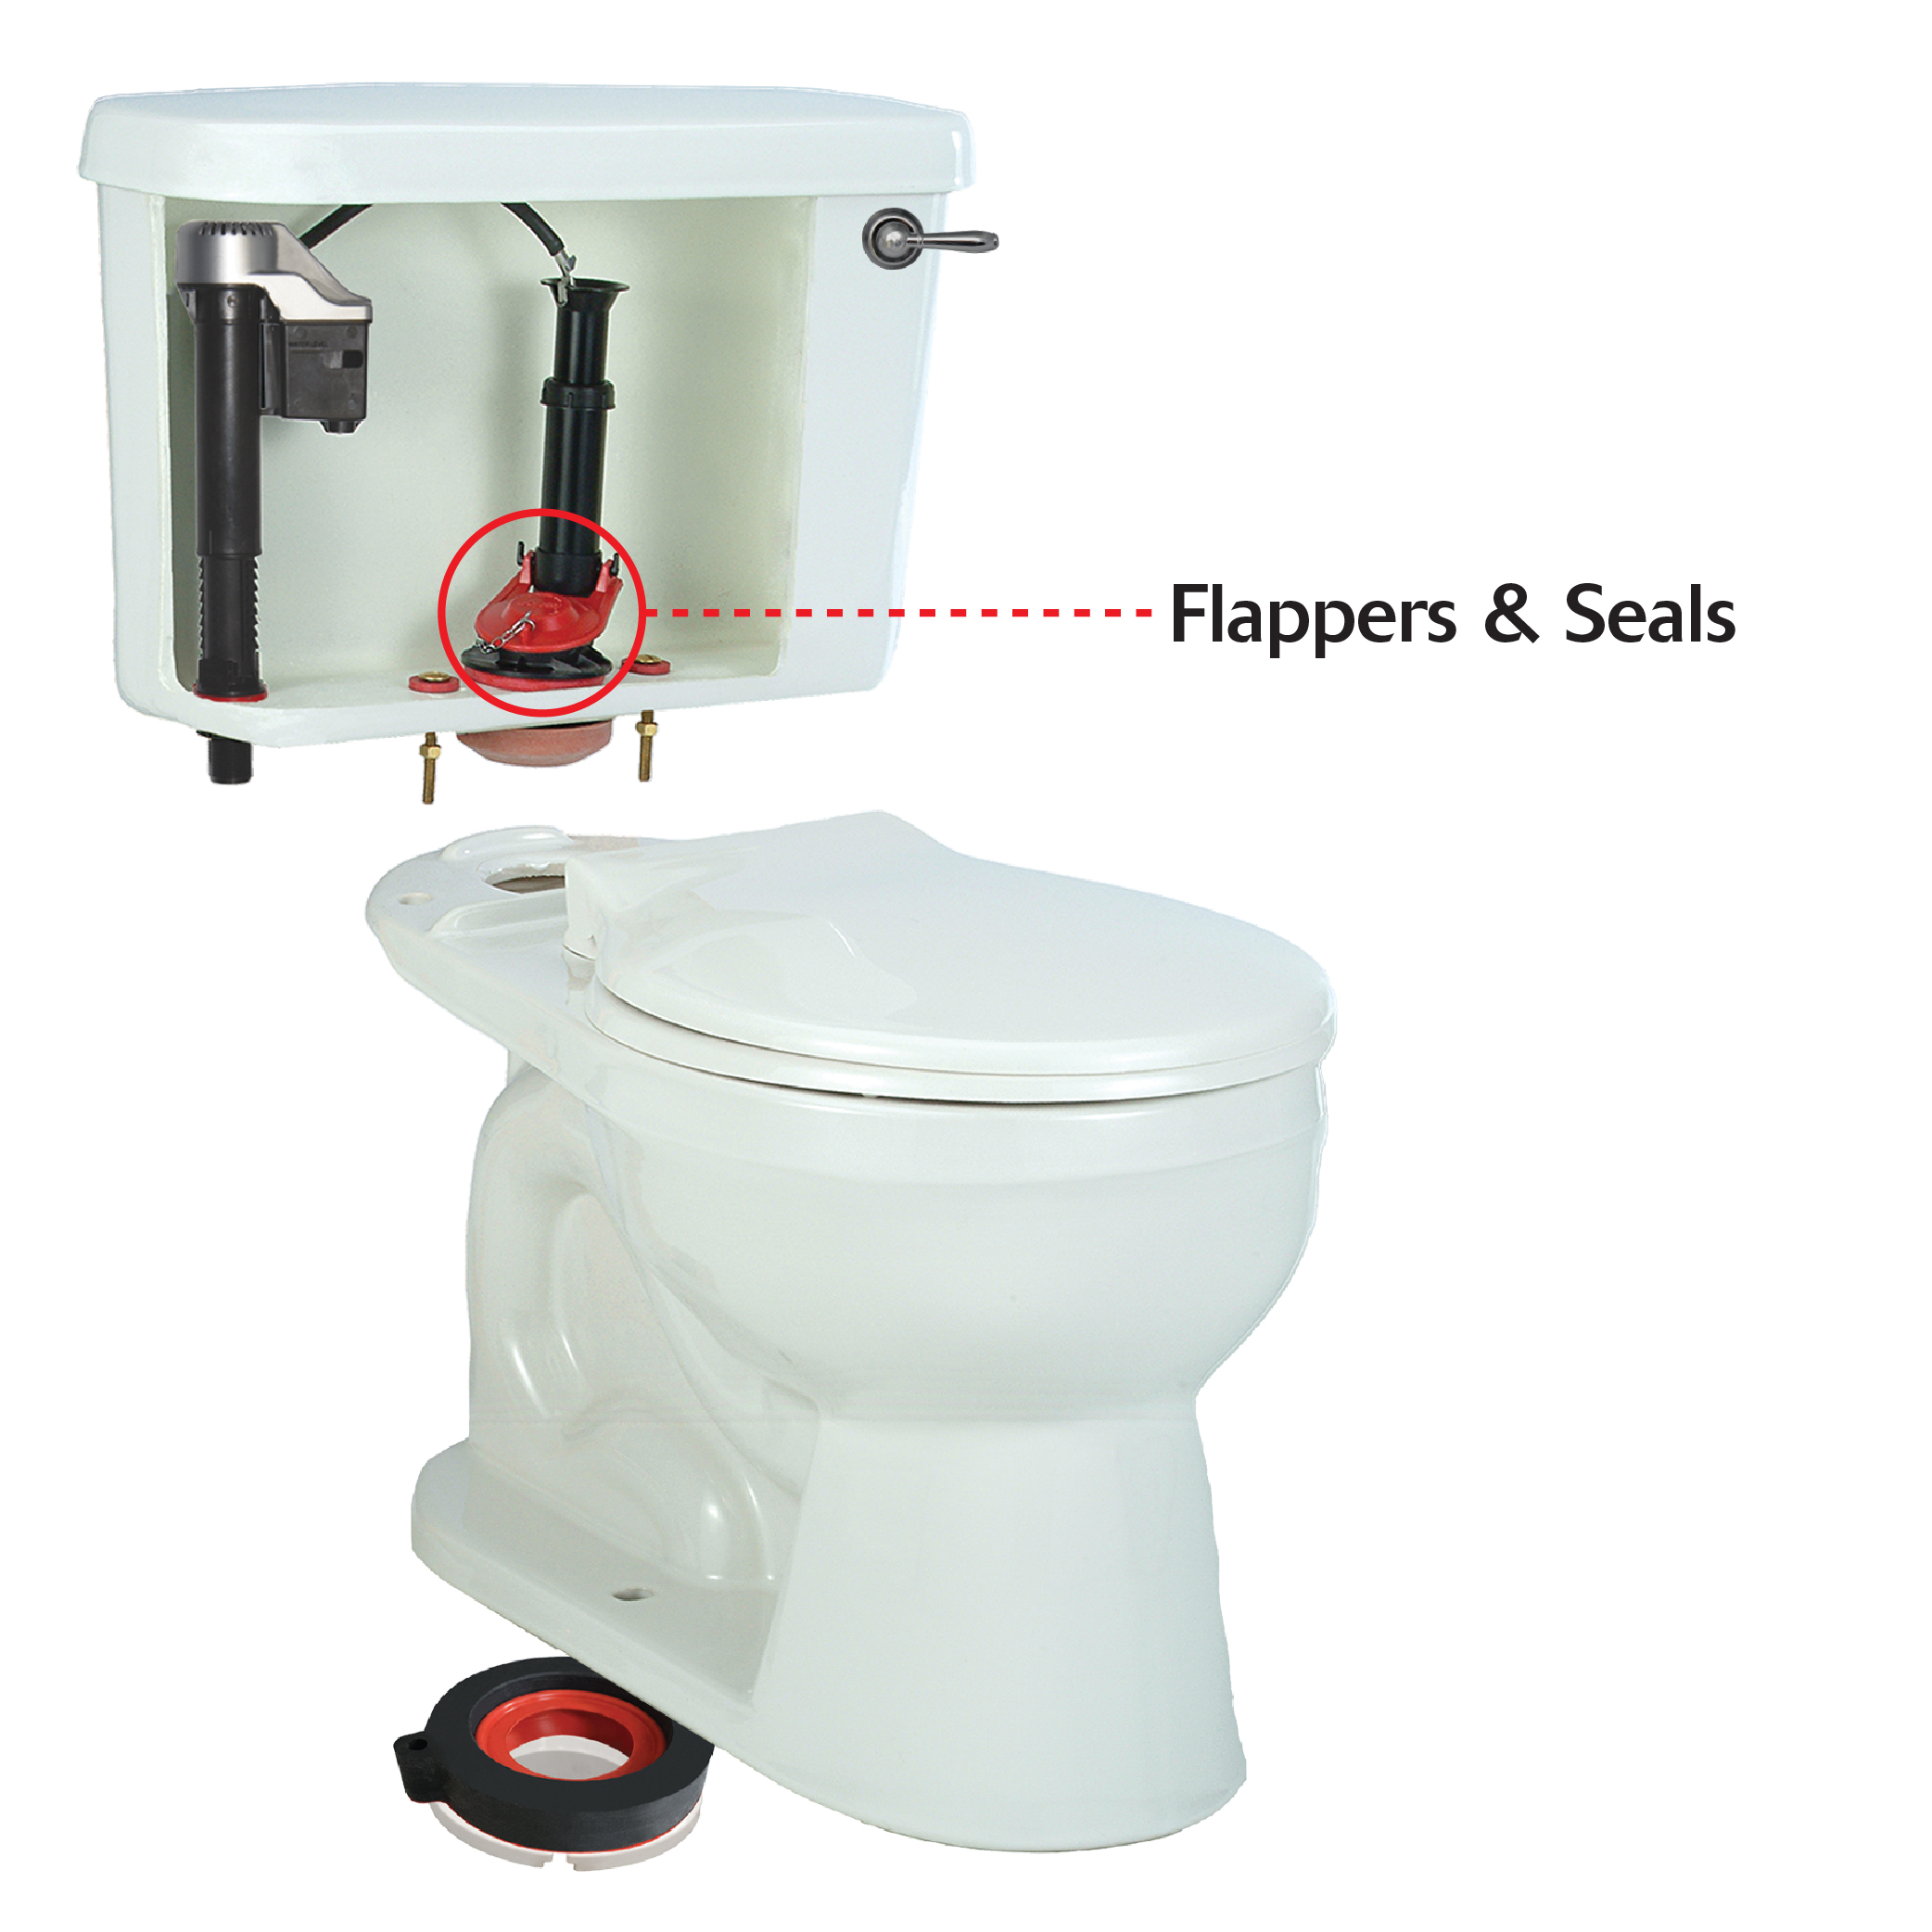 Toilet Flappers and Seals